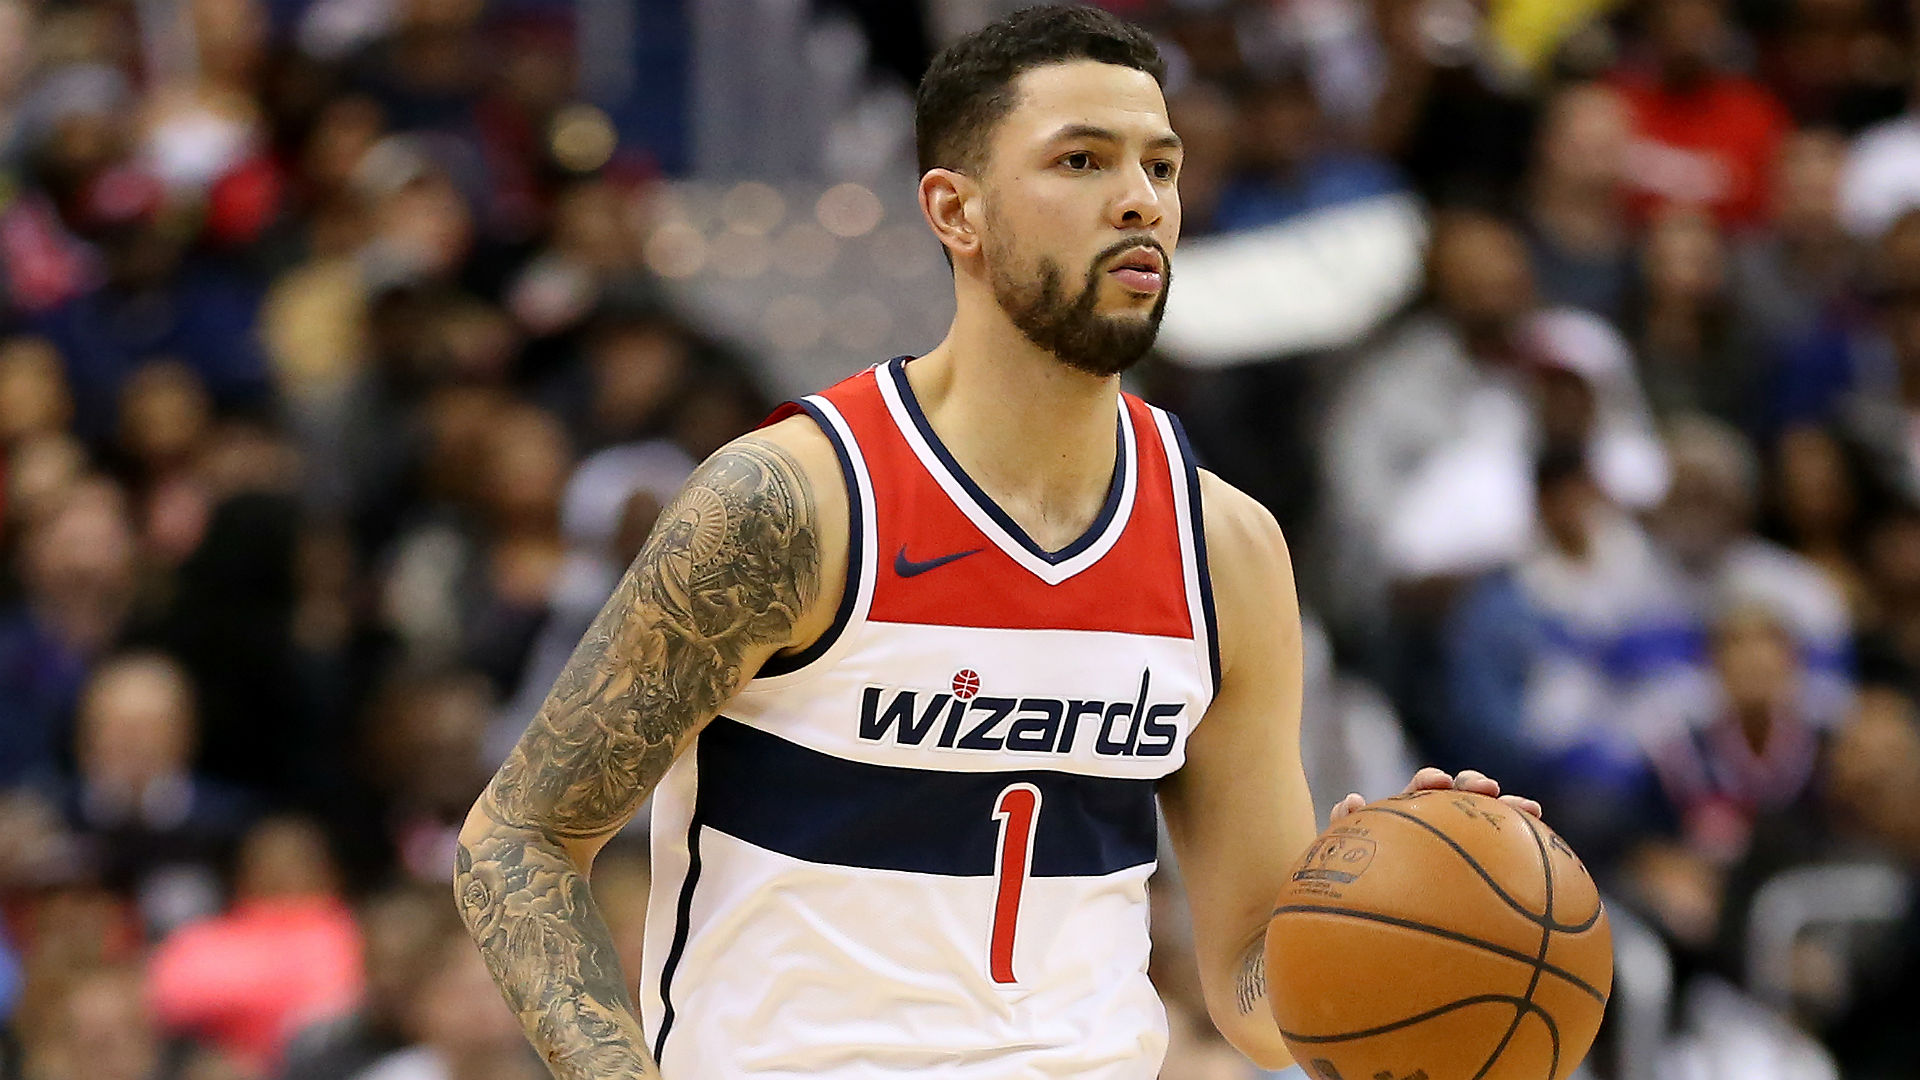 Nba Free Agency Rumors Suns To Part Ways With G Austin Rivers After